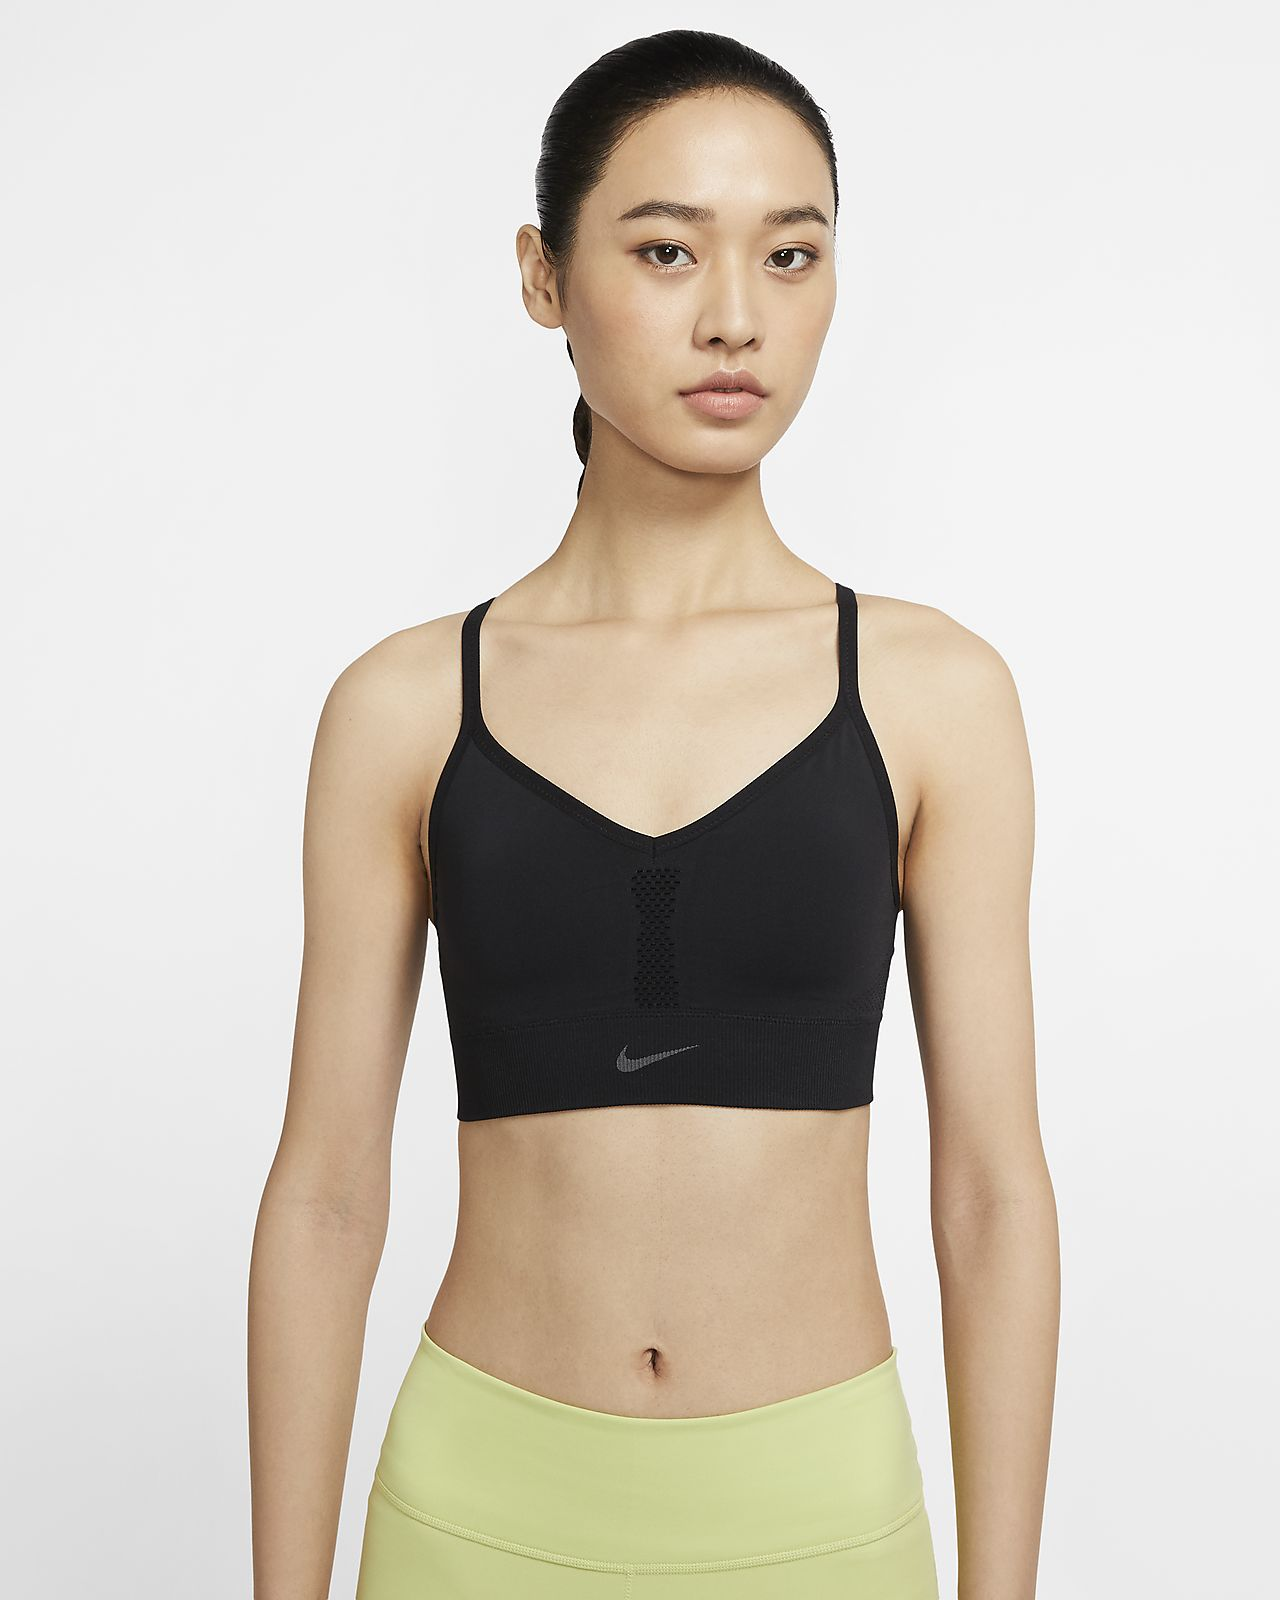 Nike Indy Women's Seamless Light-Support Sports Bra